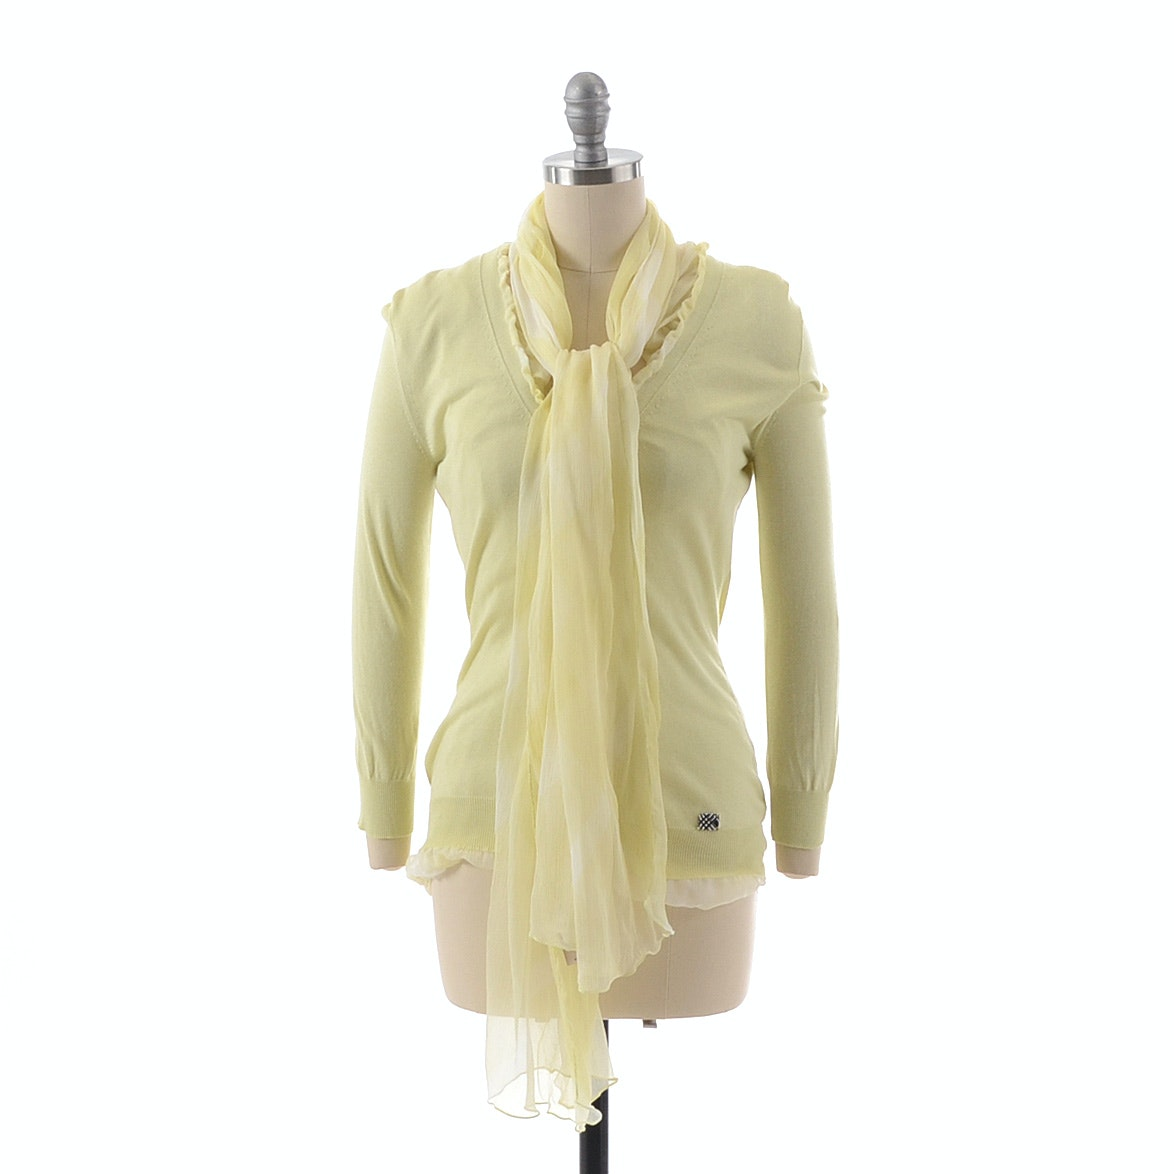 Burberry of London Dyed Silk Chiffon and Cashmere V-Neck Sweater with Matching Scarf in Pale Yellow